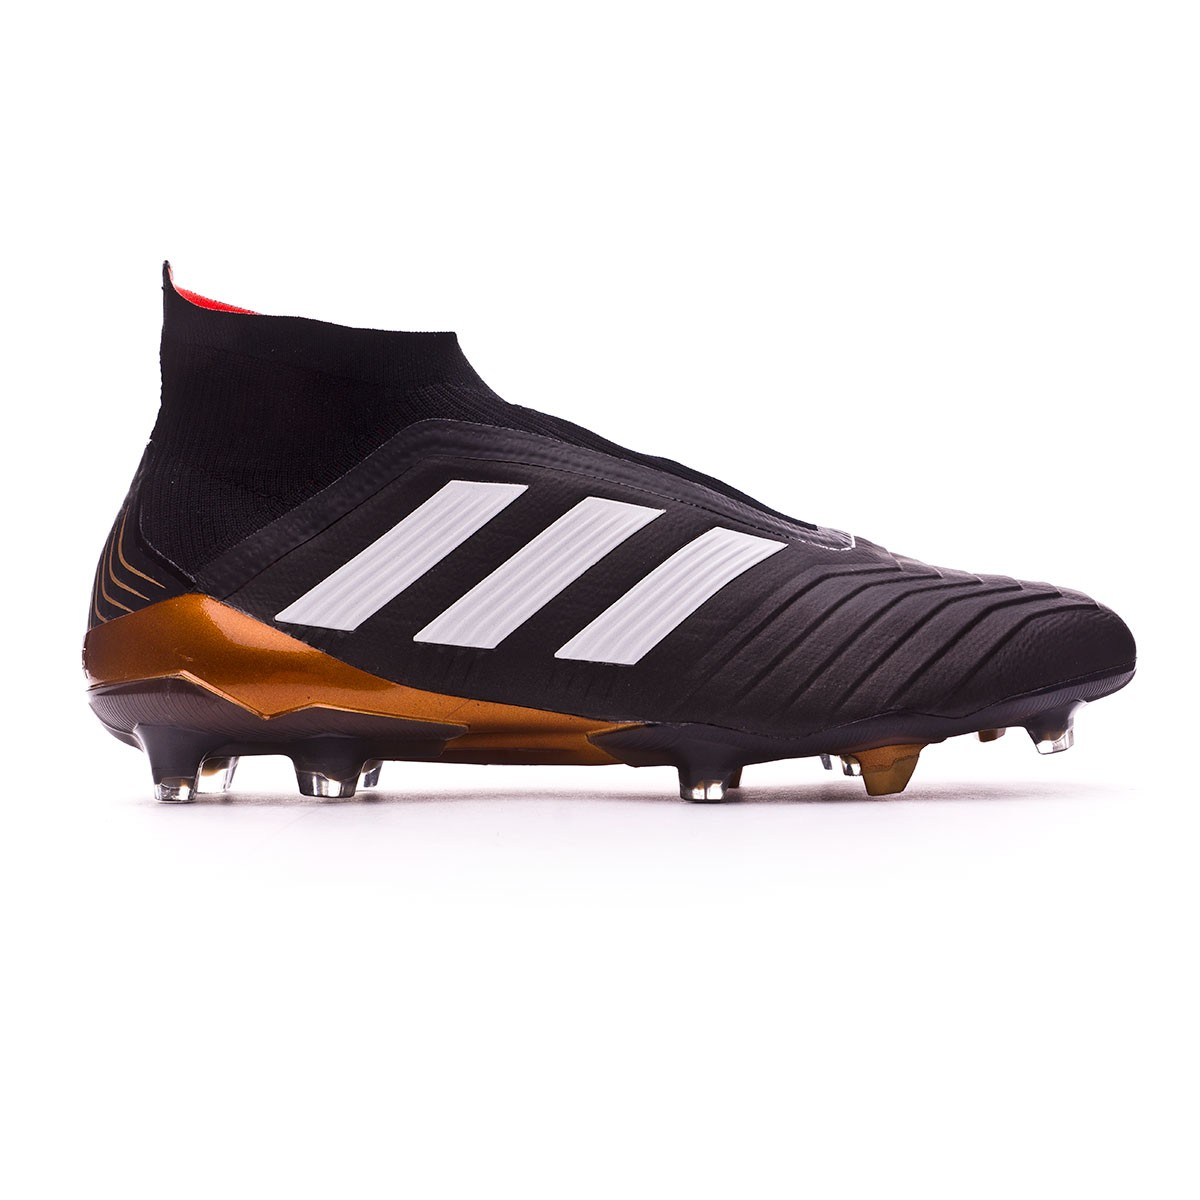 best sneakers 06df6 51e93 Football Boots adidas Predator 18+ FG Core black-White-Gold metallic-Solar  red - Football store Fútbol Emotion